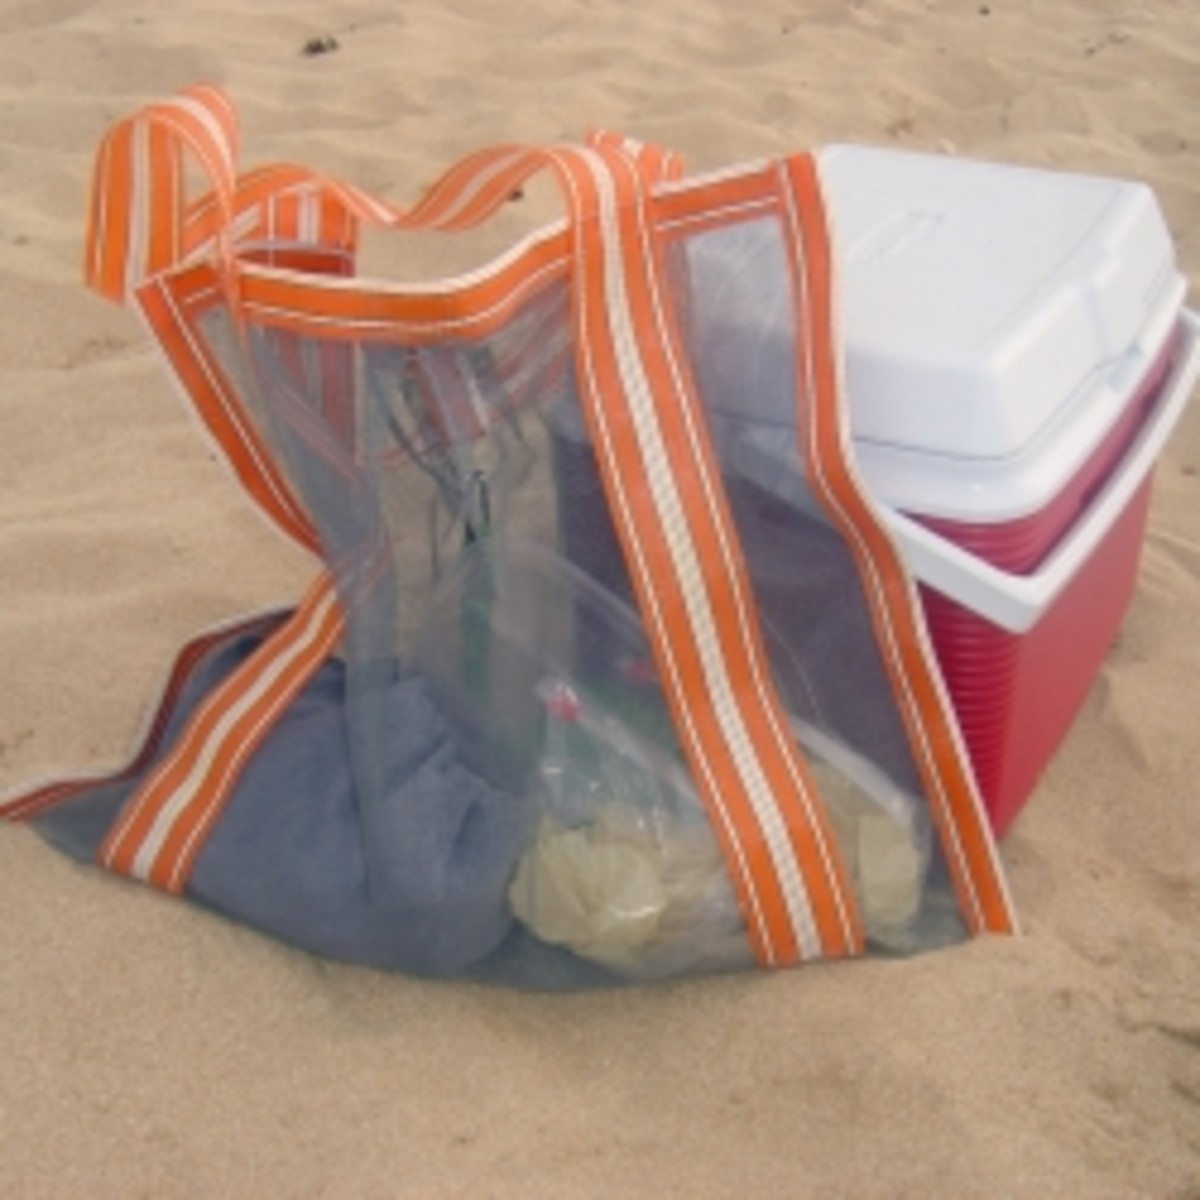 easy-sew-project-mesh-beach-tote